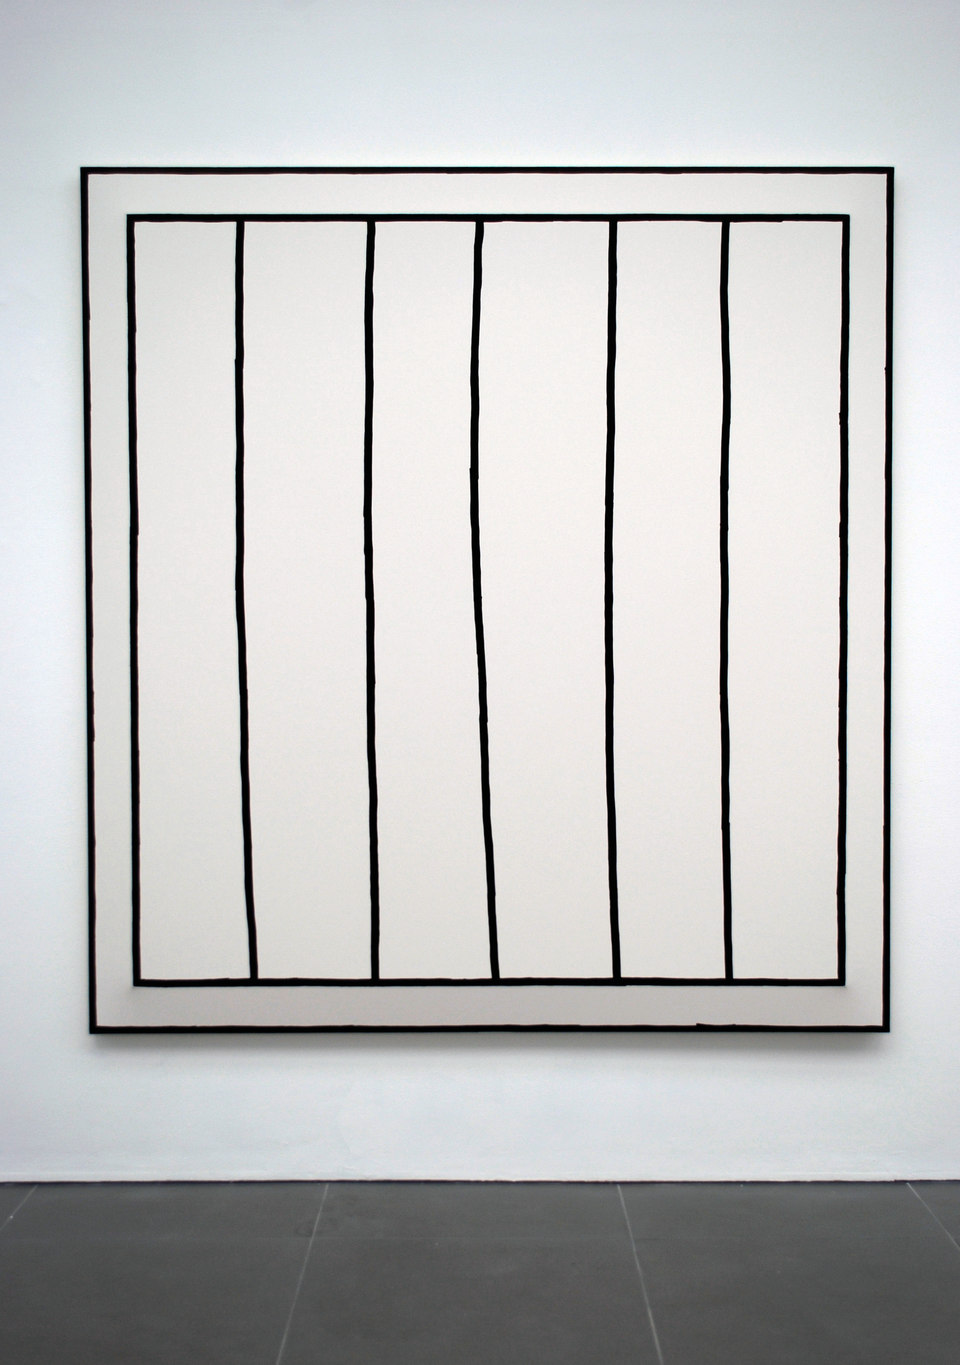 'ACCORDION', Oliver Perkins, 2011, Oil and Ink on Calico over doubled stretcher, 177X165cm outside stretcher/155X145cm inside stretcher, Cell Project Space